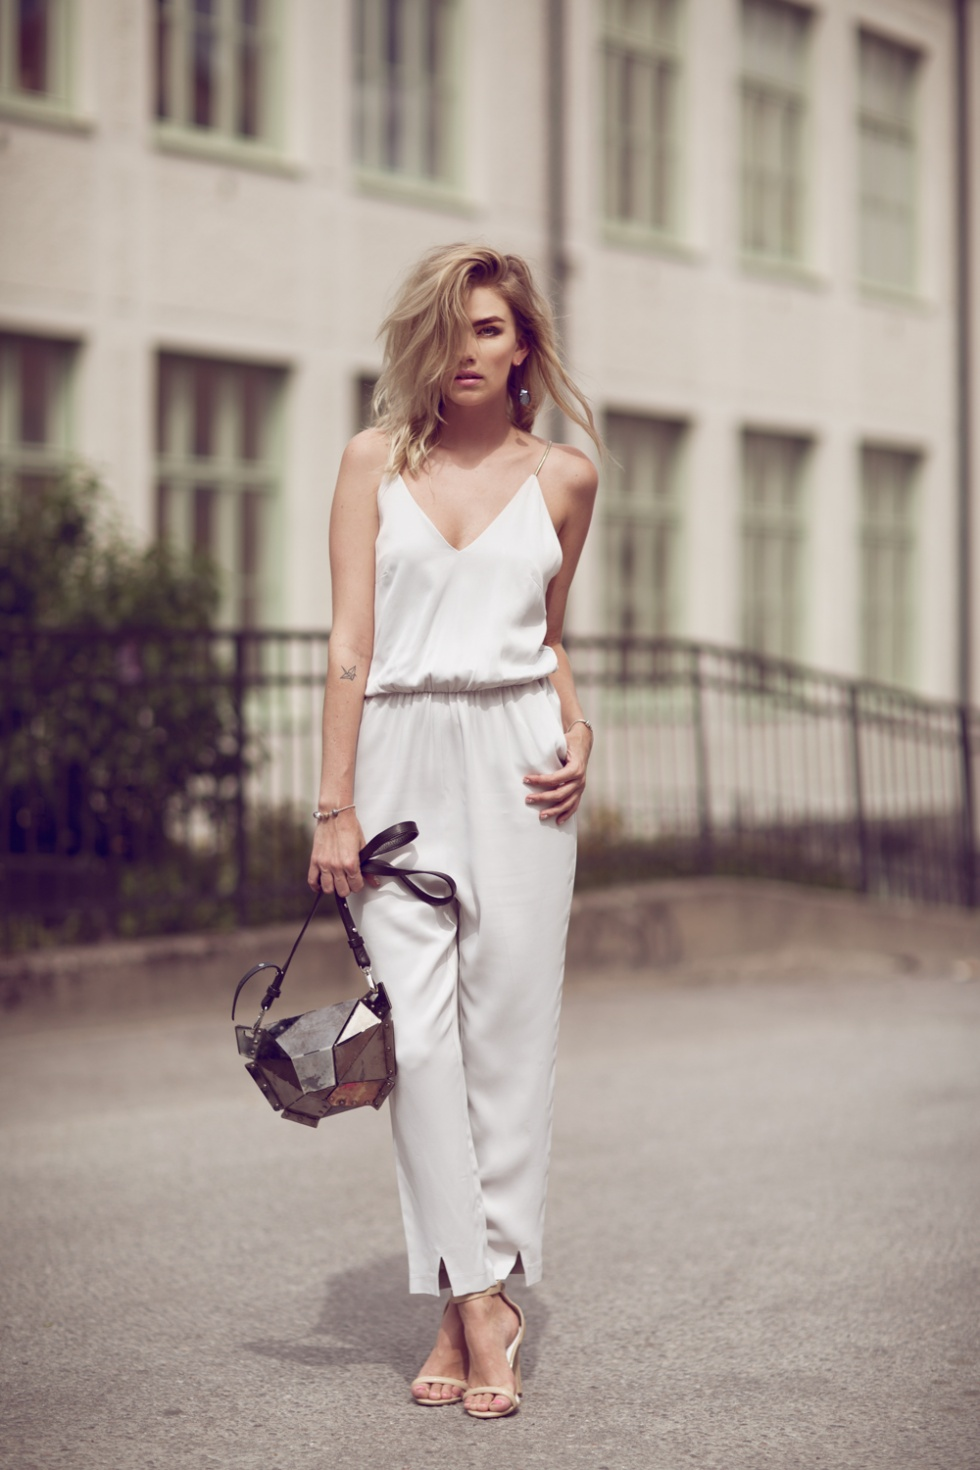 Casual Spring Outfits: Elsa Ekman in a stunning silk white jumpsuit and heels accessorised with a stylish handbag Jumpsuit: Gina Tricot, Heels: Jennie-Ellen, Bag: SALAR